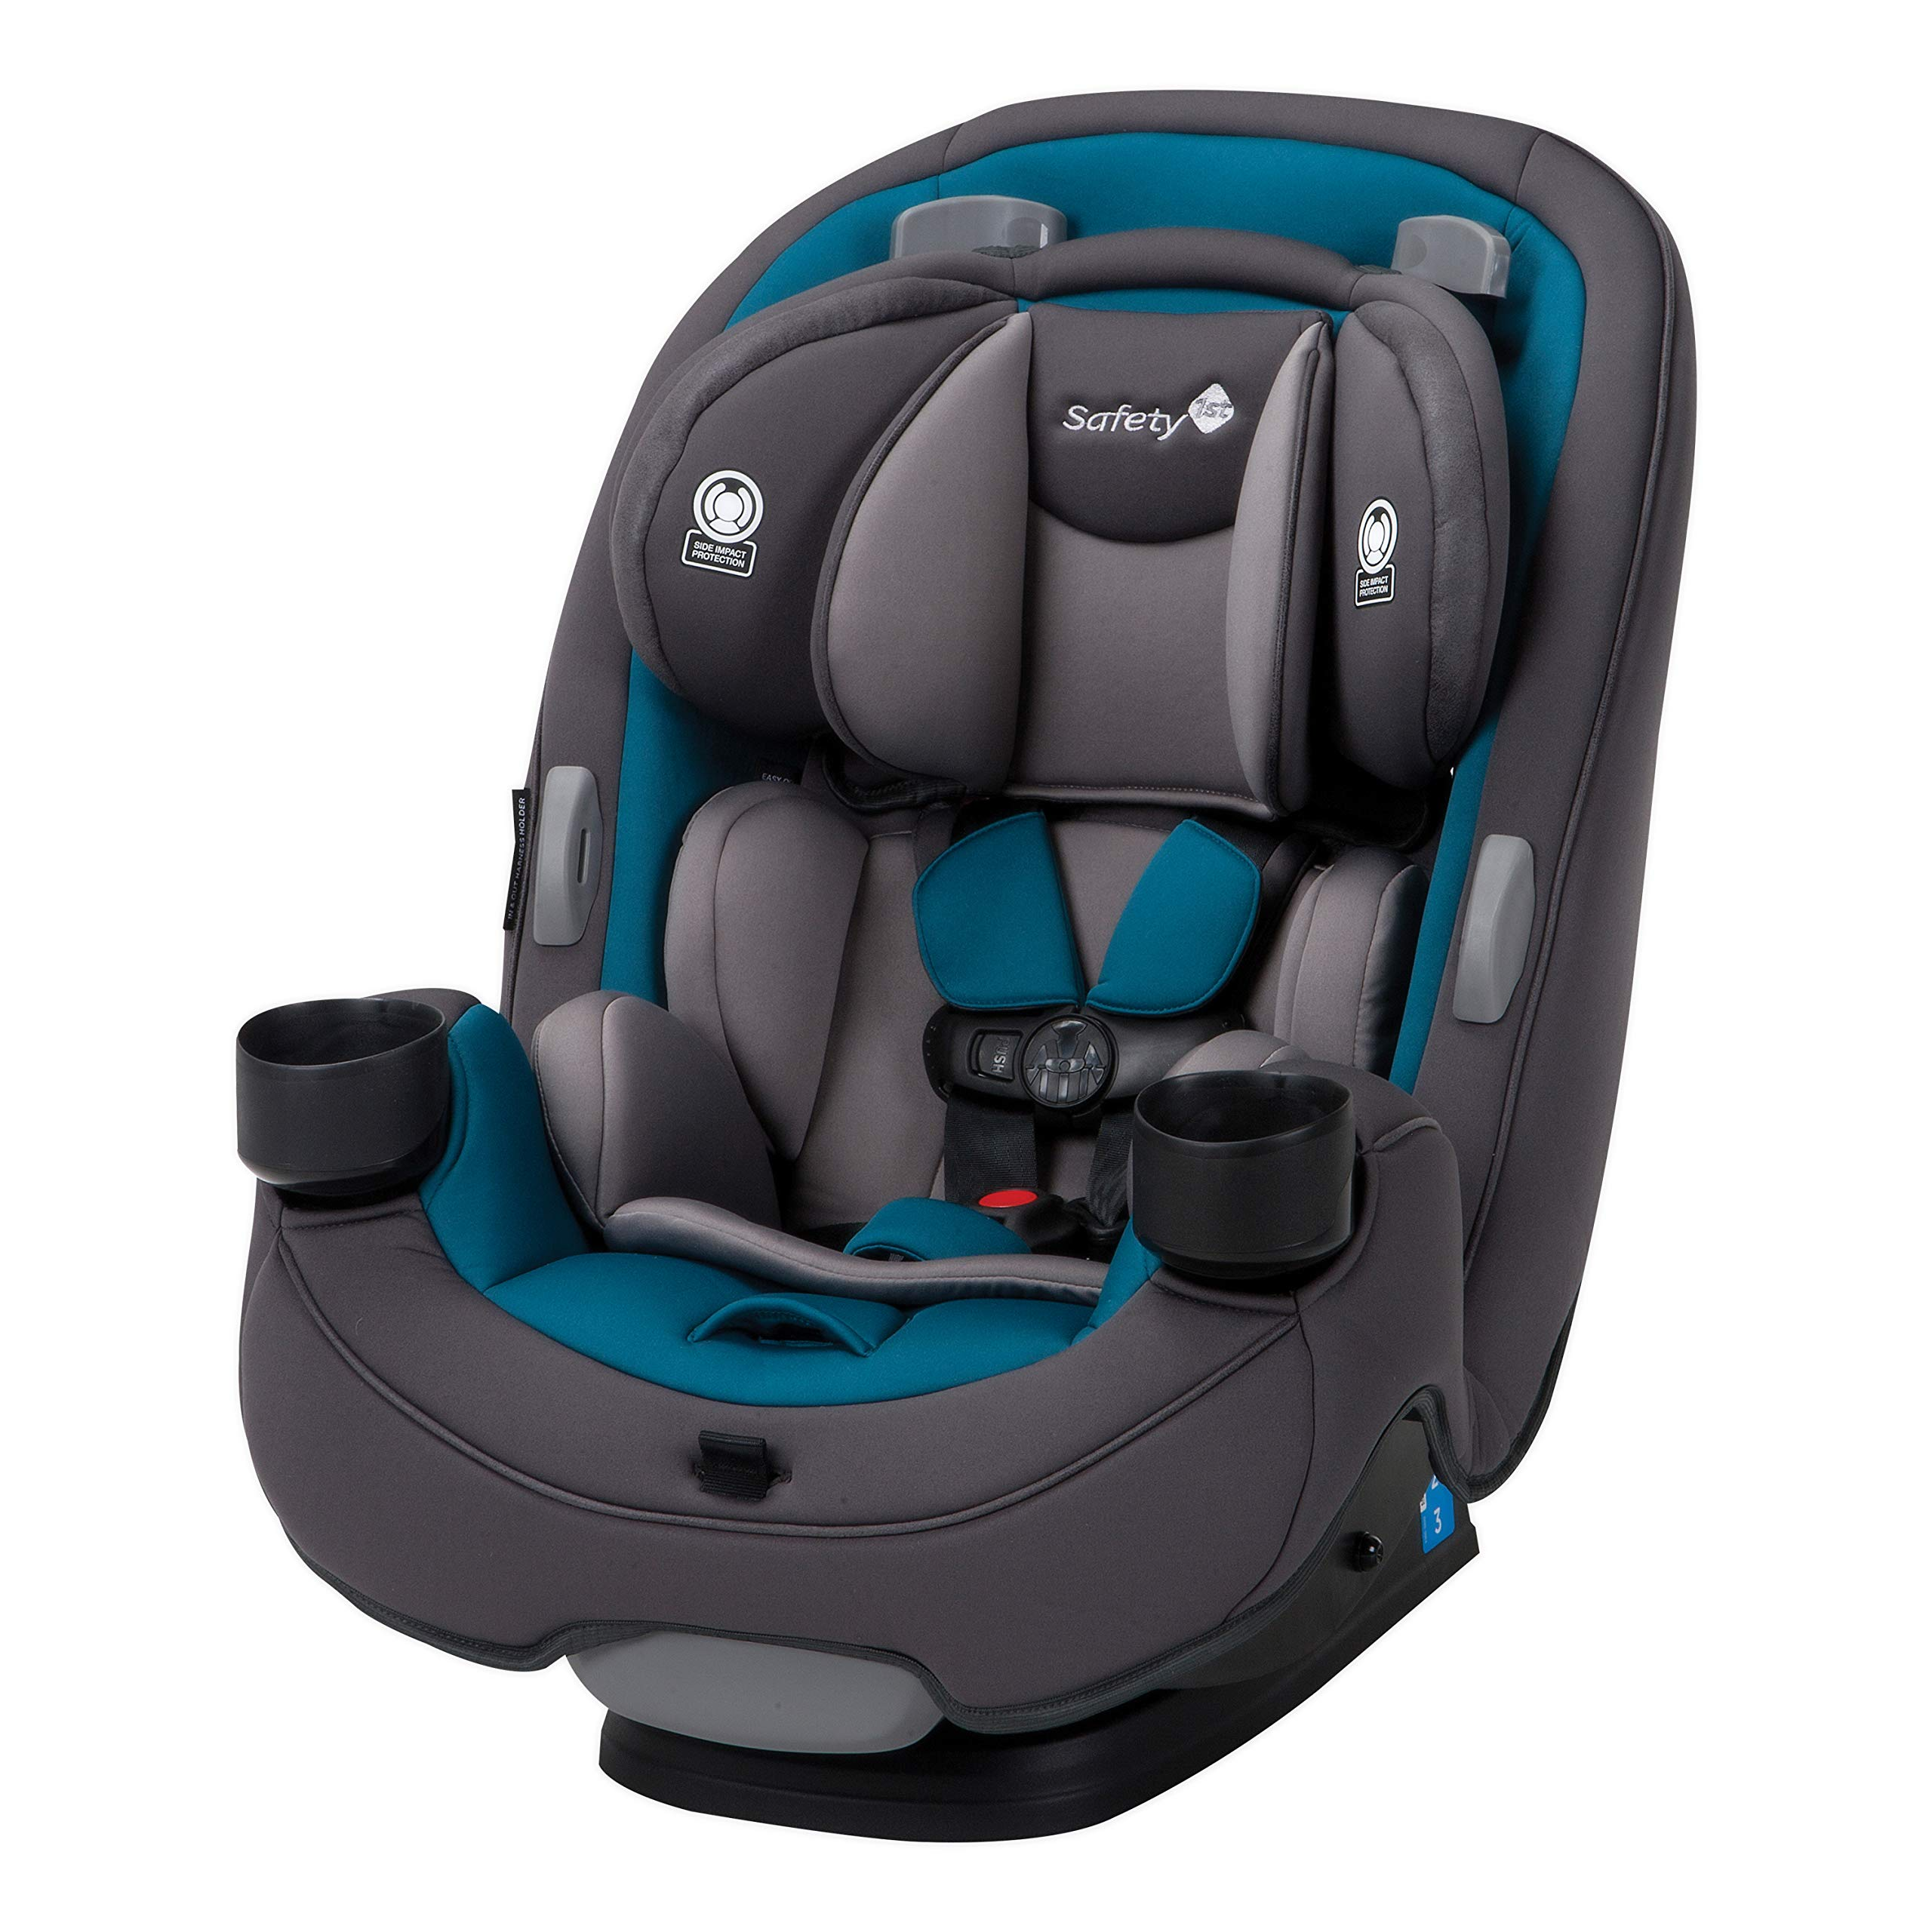 bcb97968b3ccb Amazon.com   Safety 1st Grow and Go 3-in-1 Convertible Car Seat ...